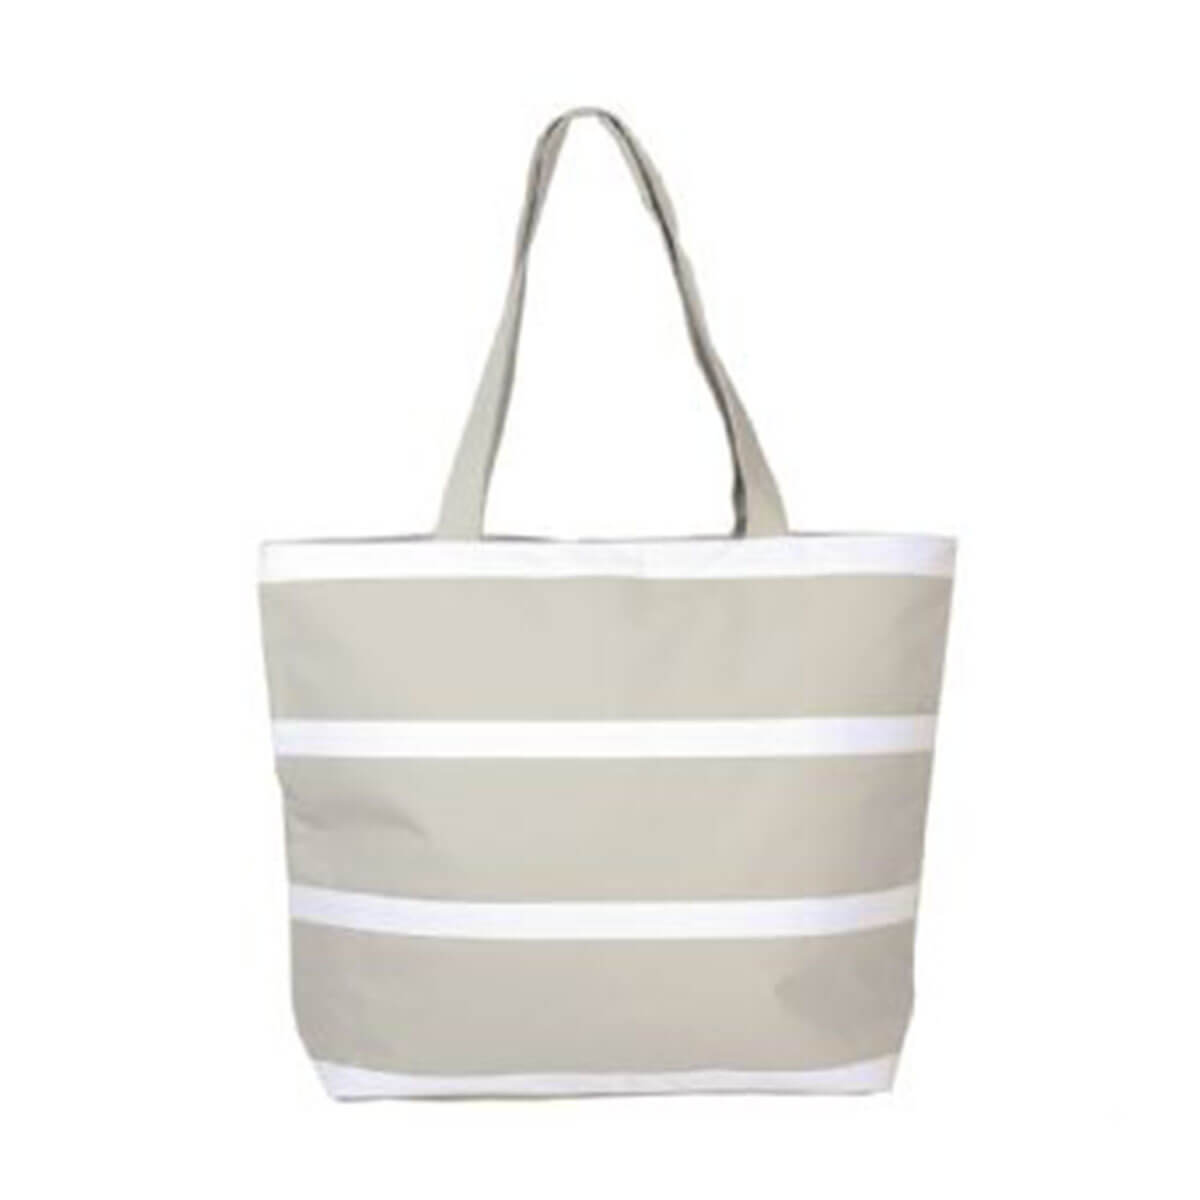 Insulated Cooler Bag-Grey with white stripes.